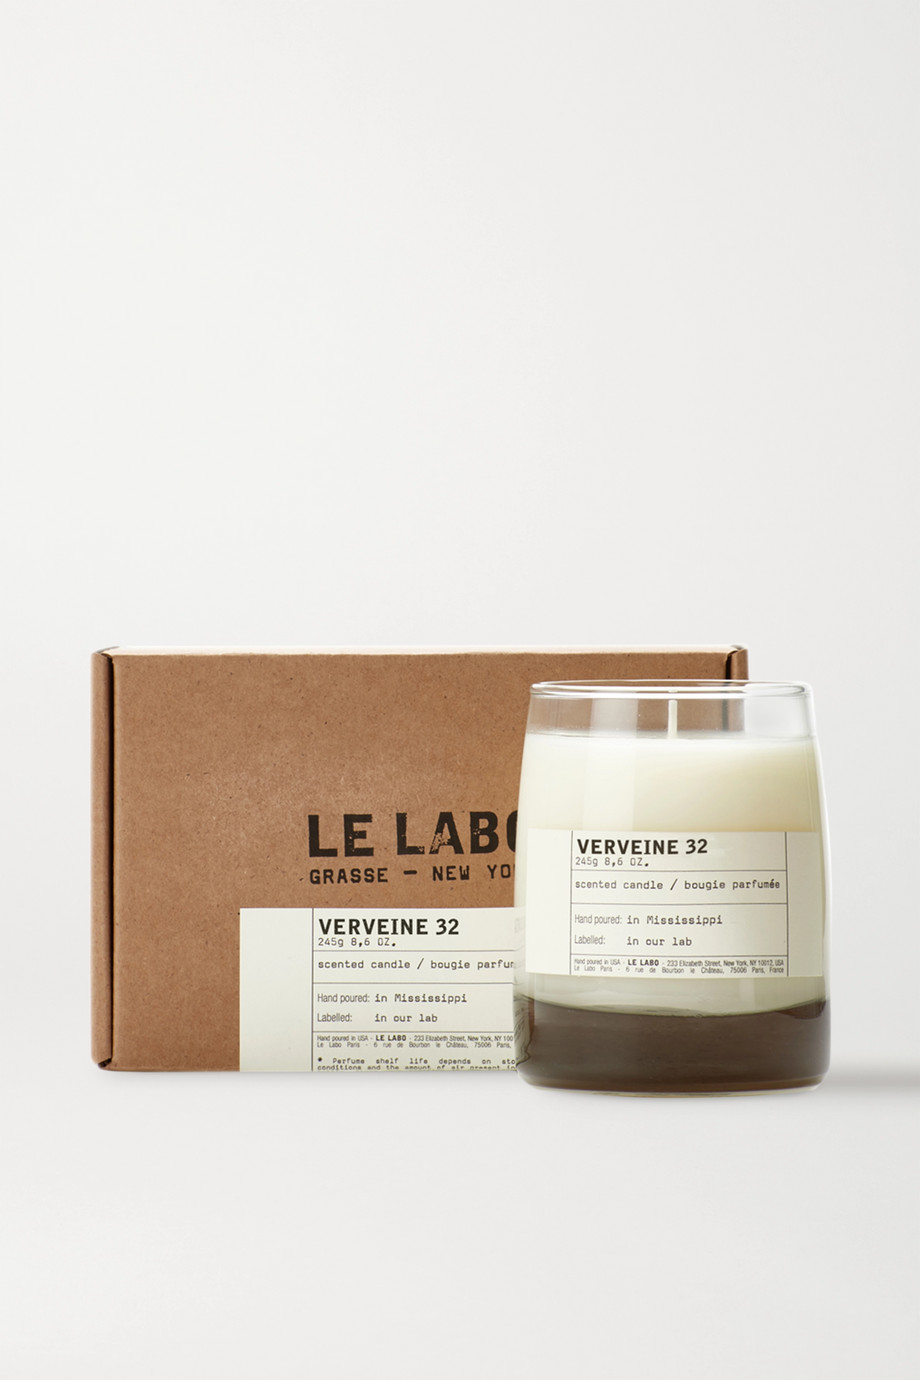 Le Labo Verveine 32 scented candle, 245g